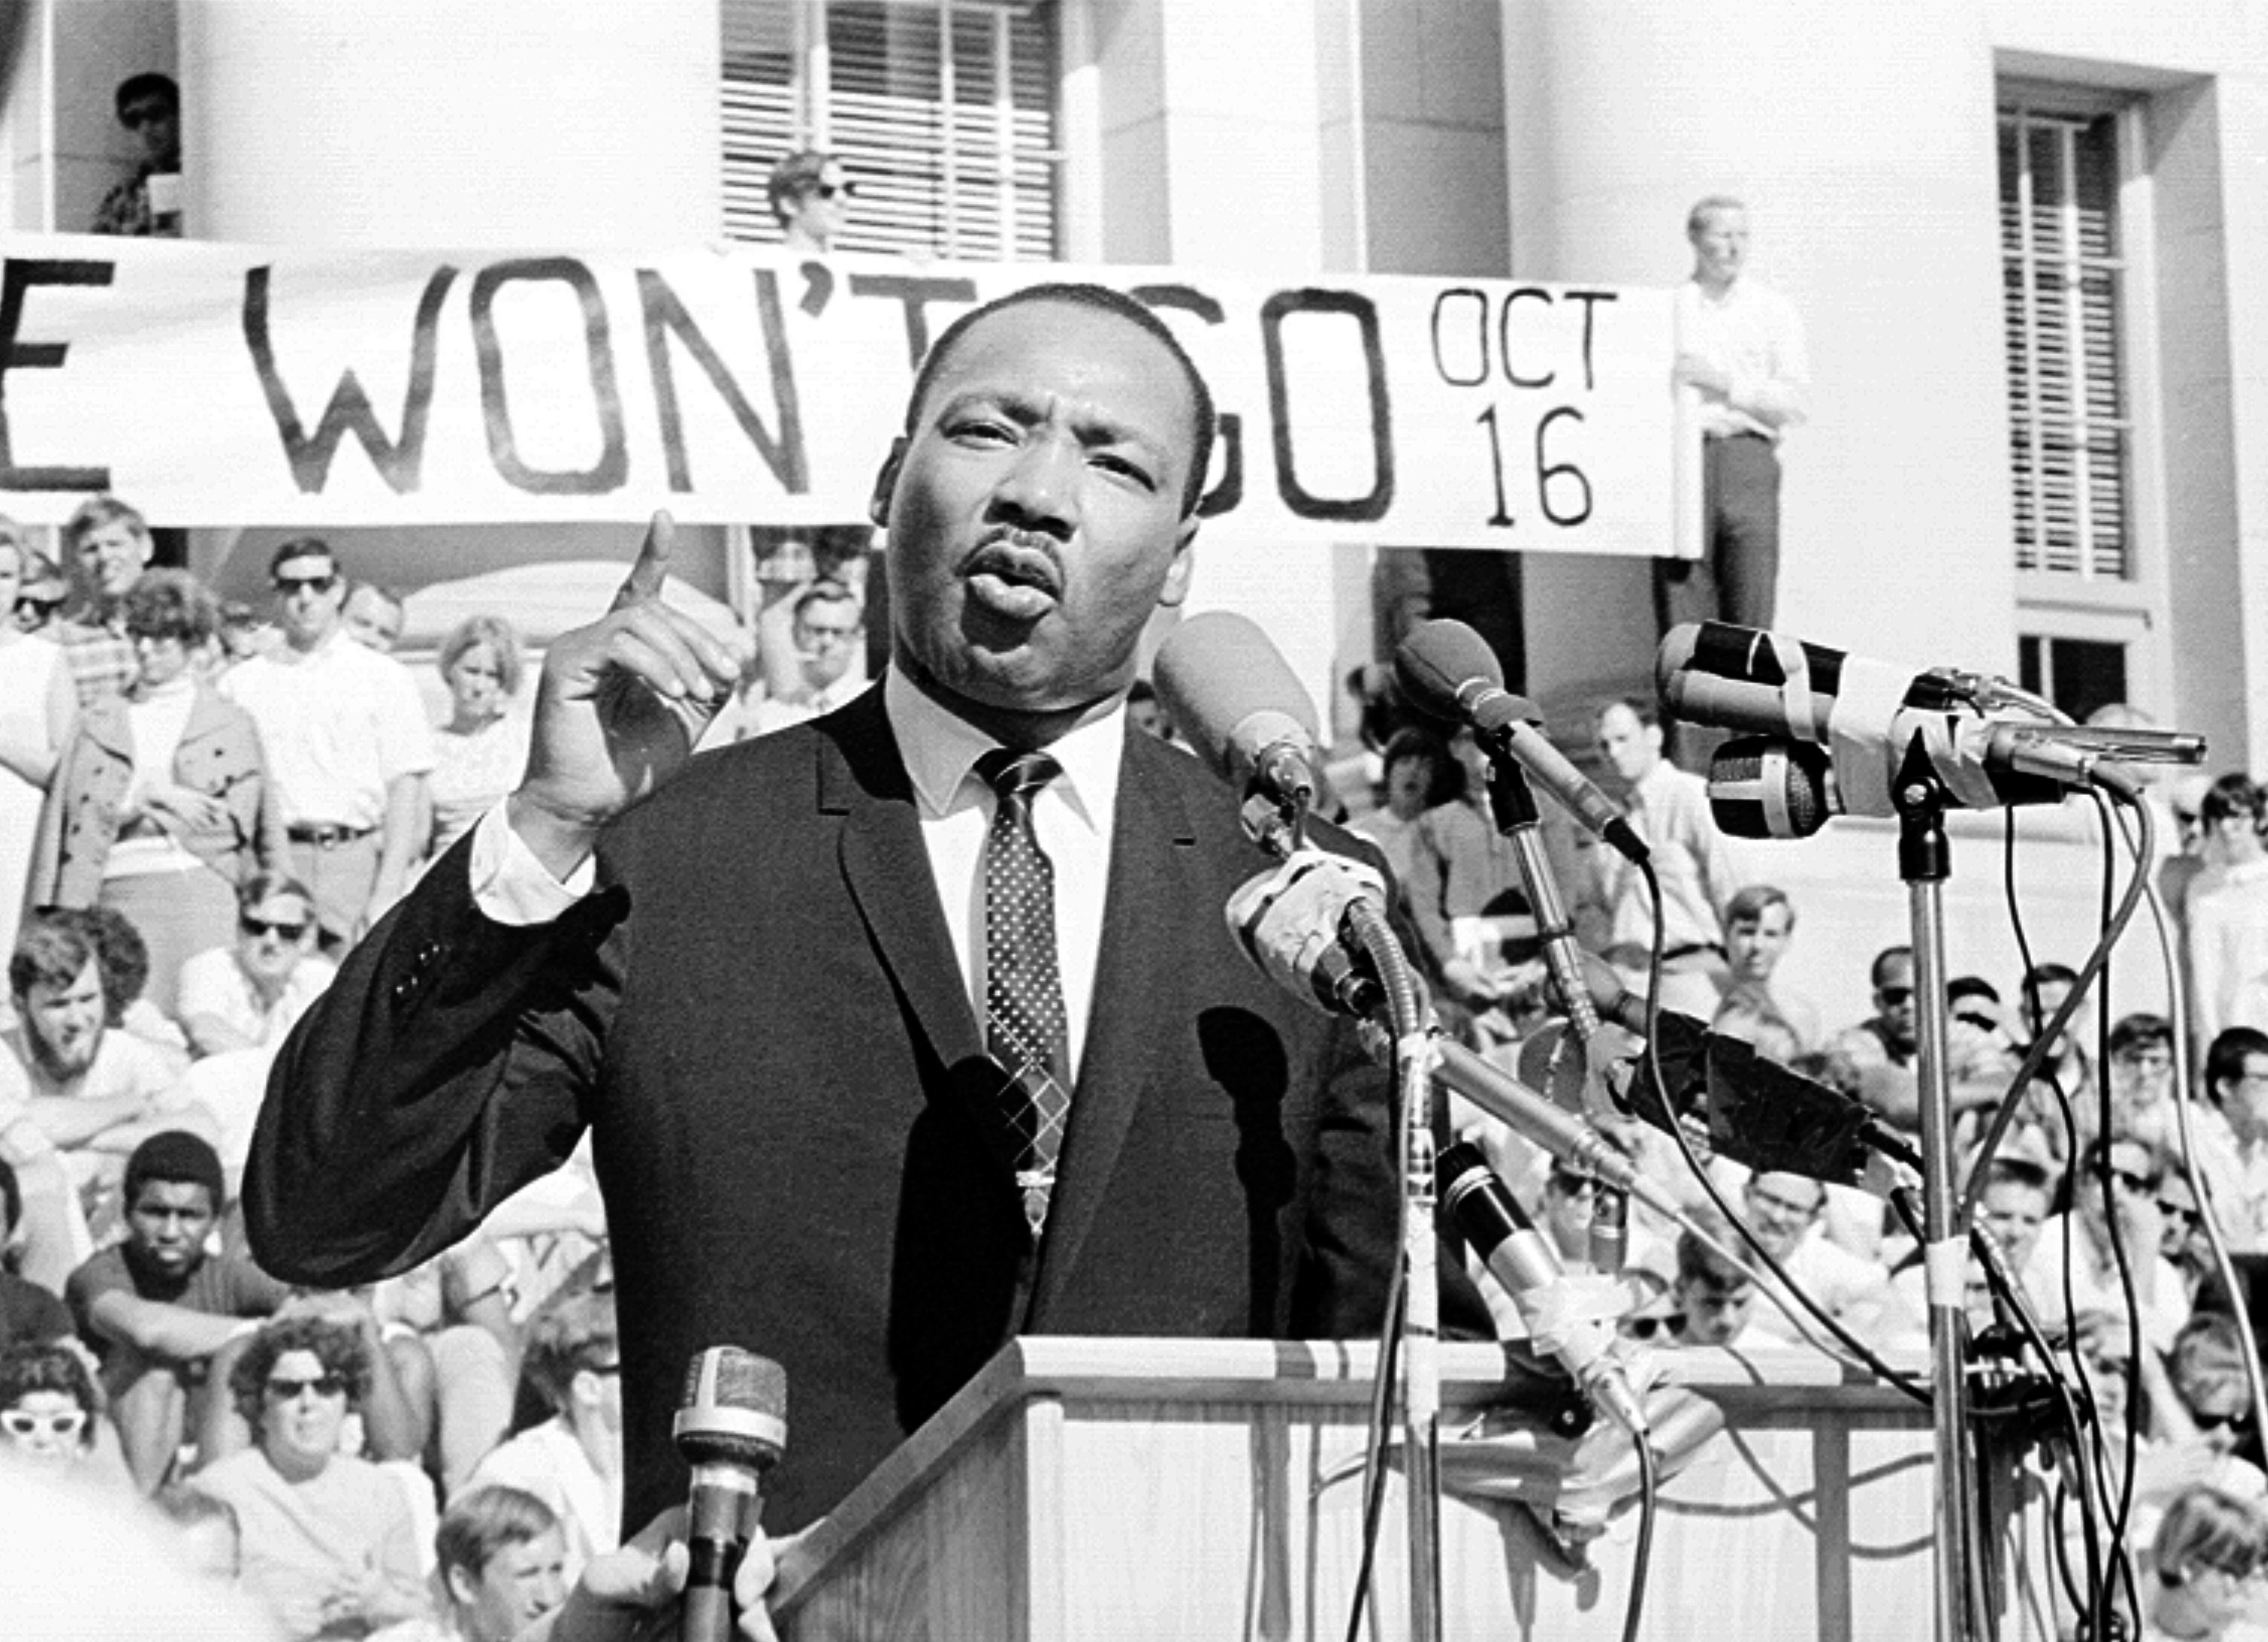 """Read the 1966 Telegram Where MLK Tells Cesar Chavez """"Our Separate Struggles Are Really One"""""""